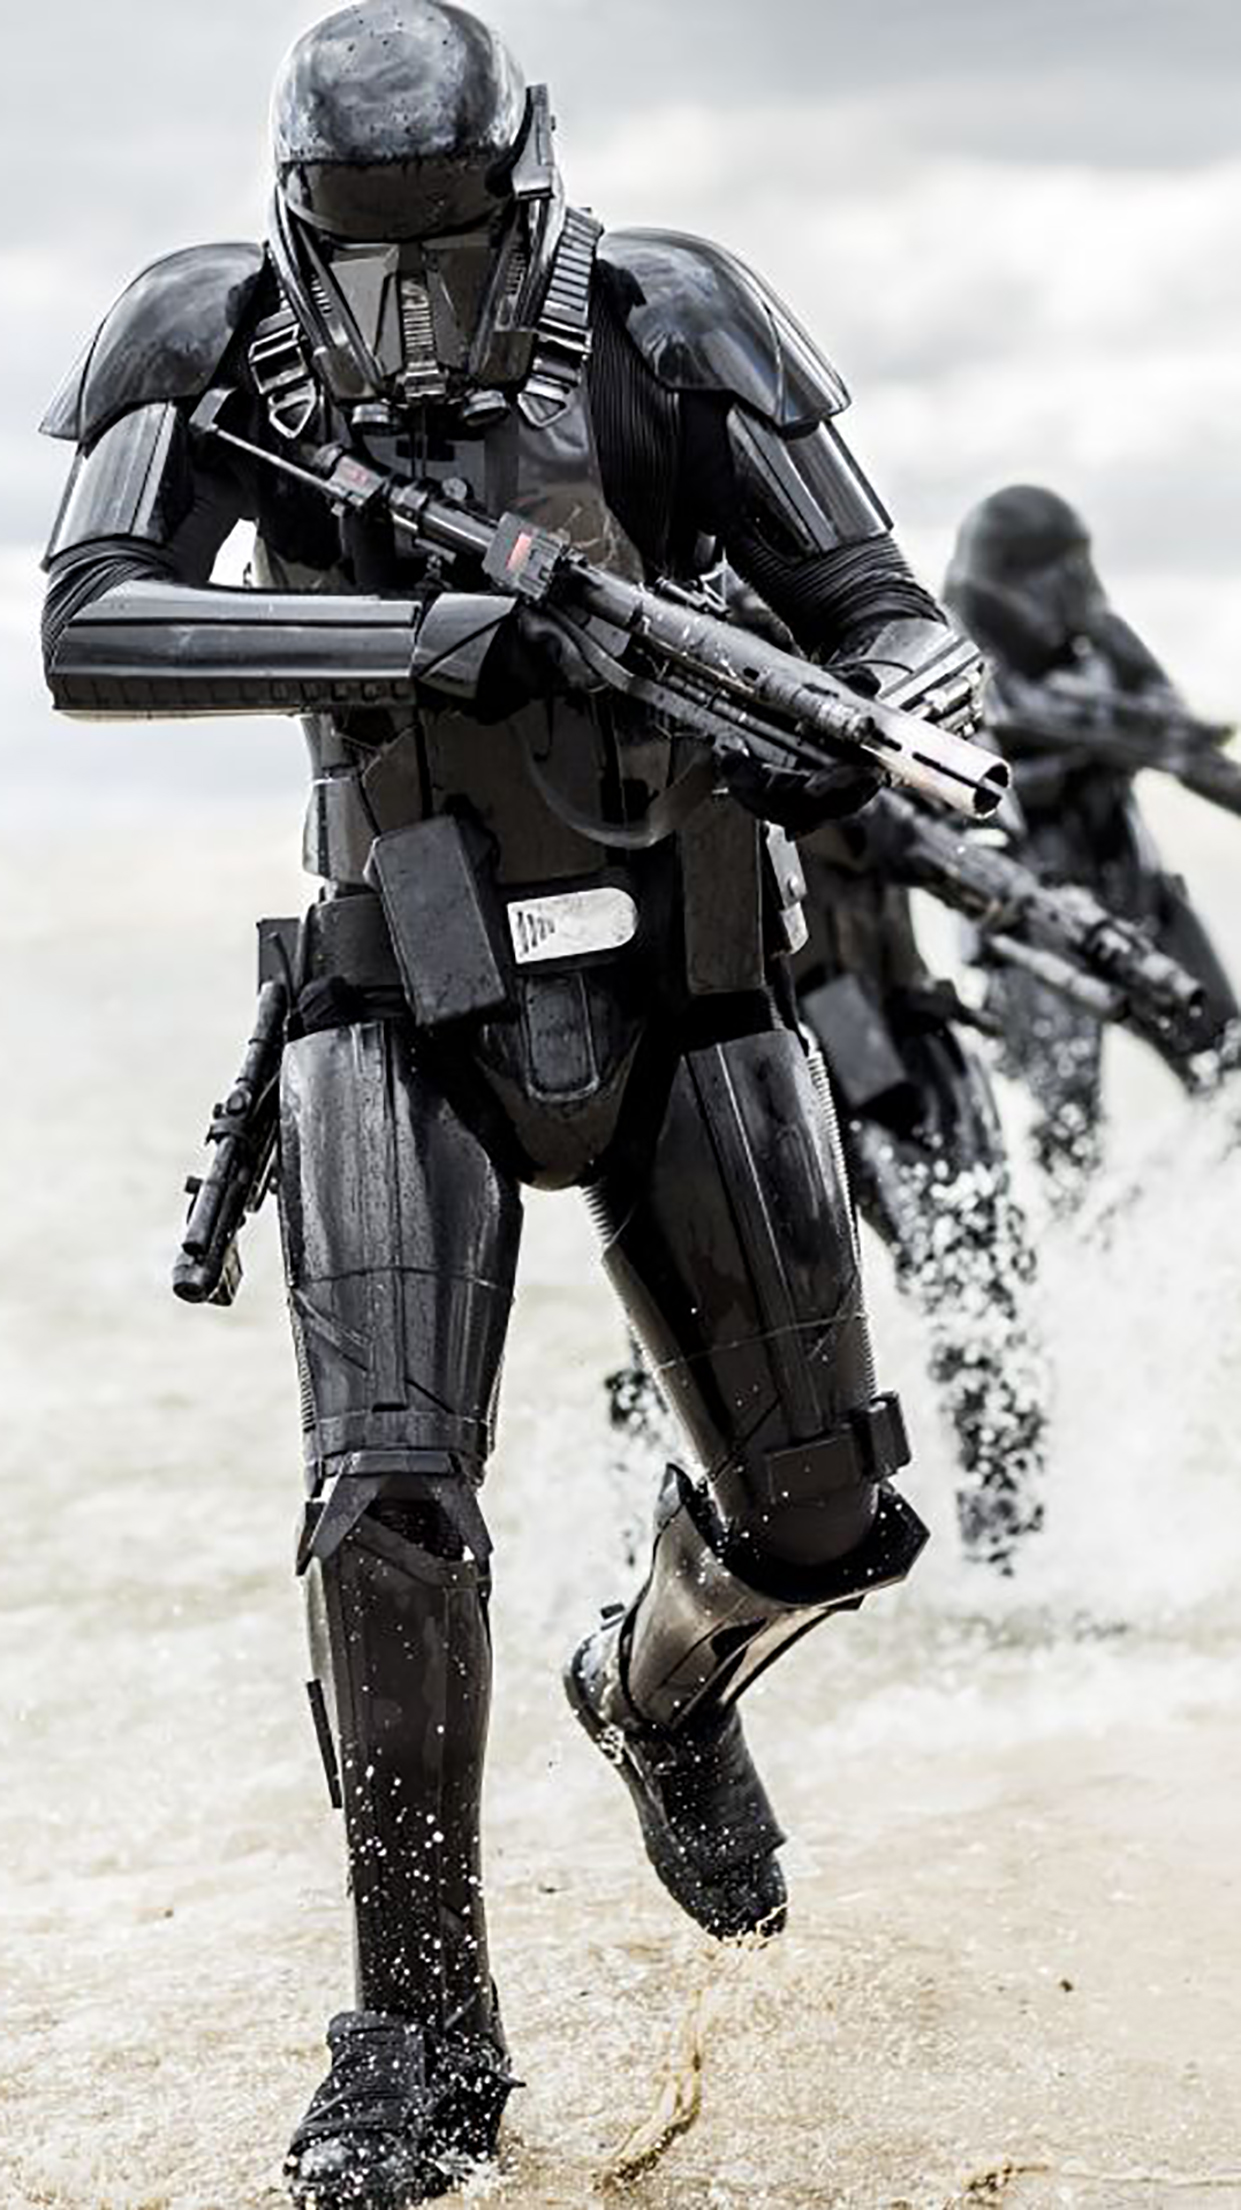 Star Wars Rogue One Robots 3Wallpapers iPhone Parallax Star Wars Rogue One : Robots